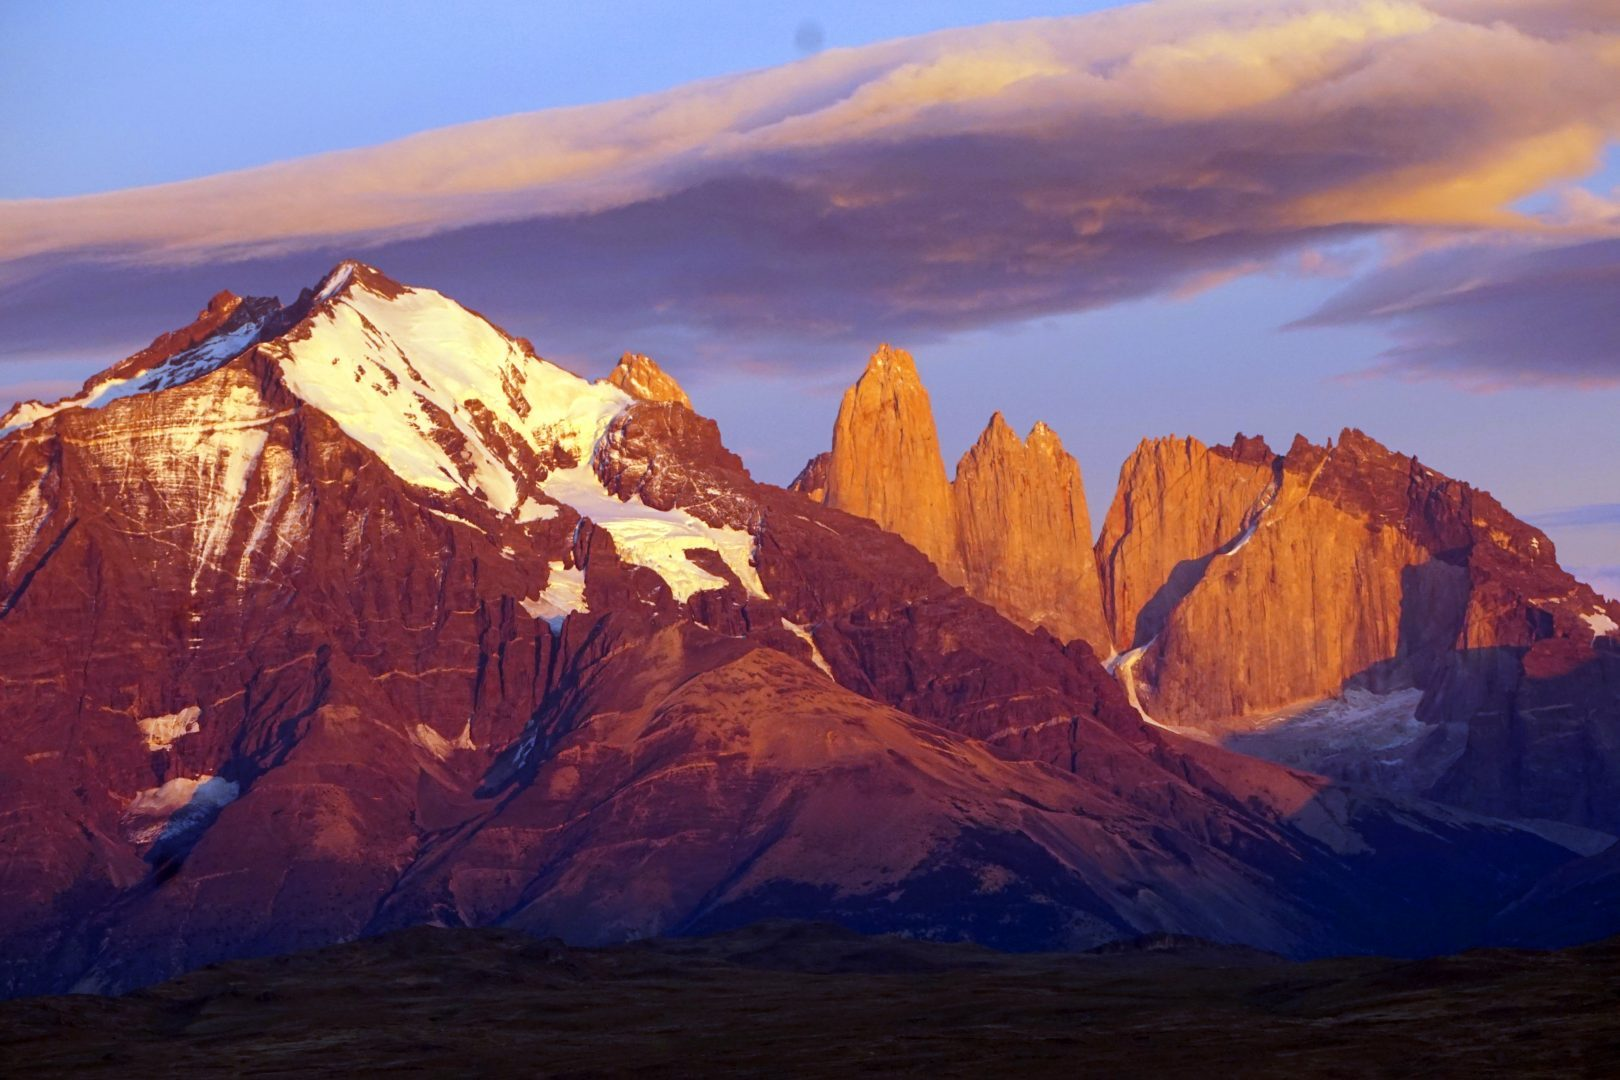 The otherworldly Torres del Paine at dawn